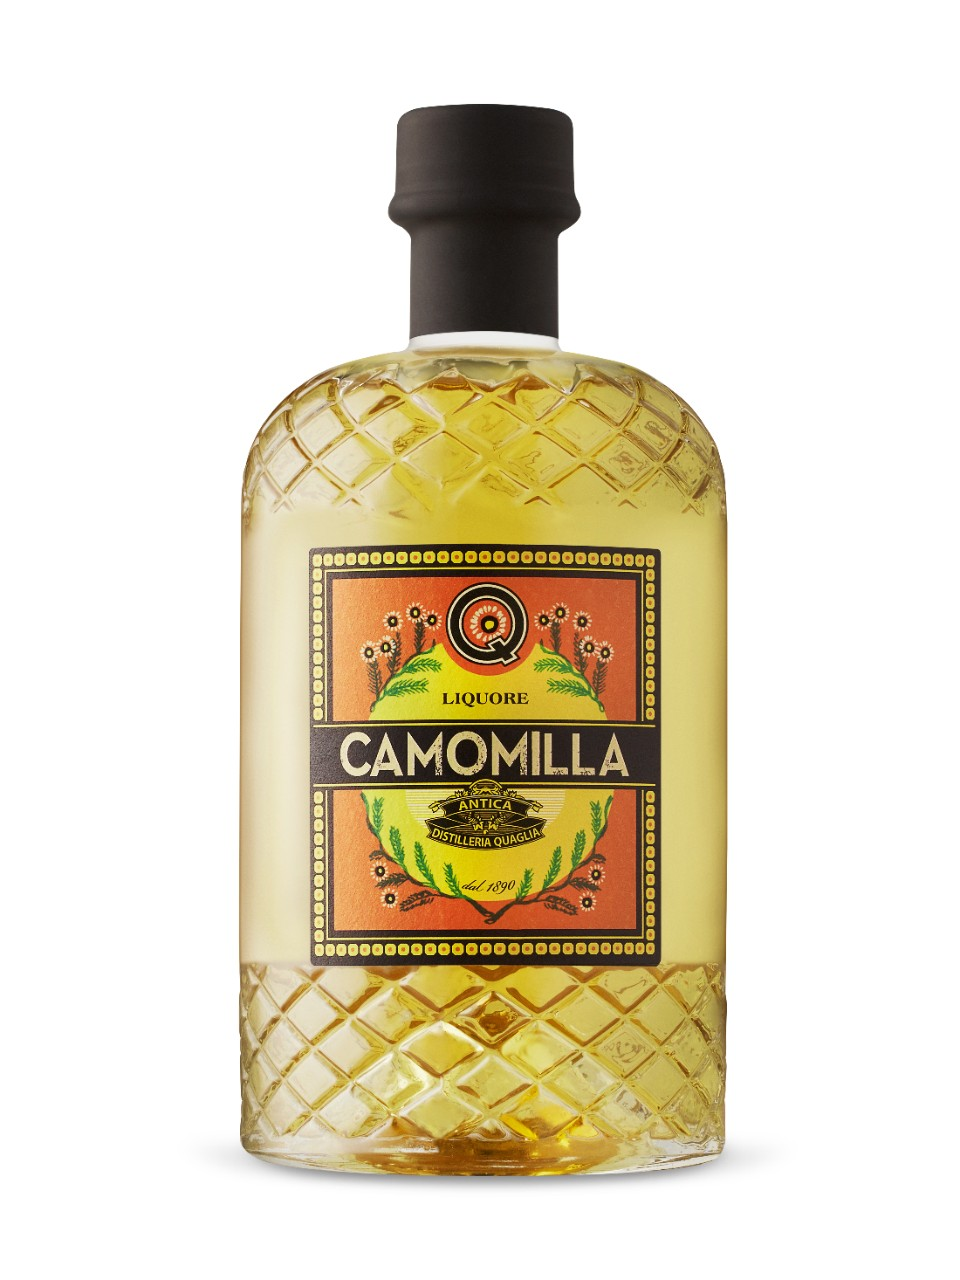 Image for Camomilla Liquore from LCBO